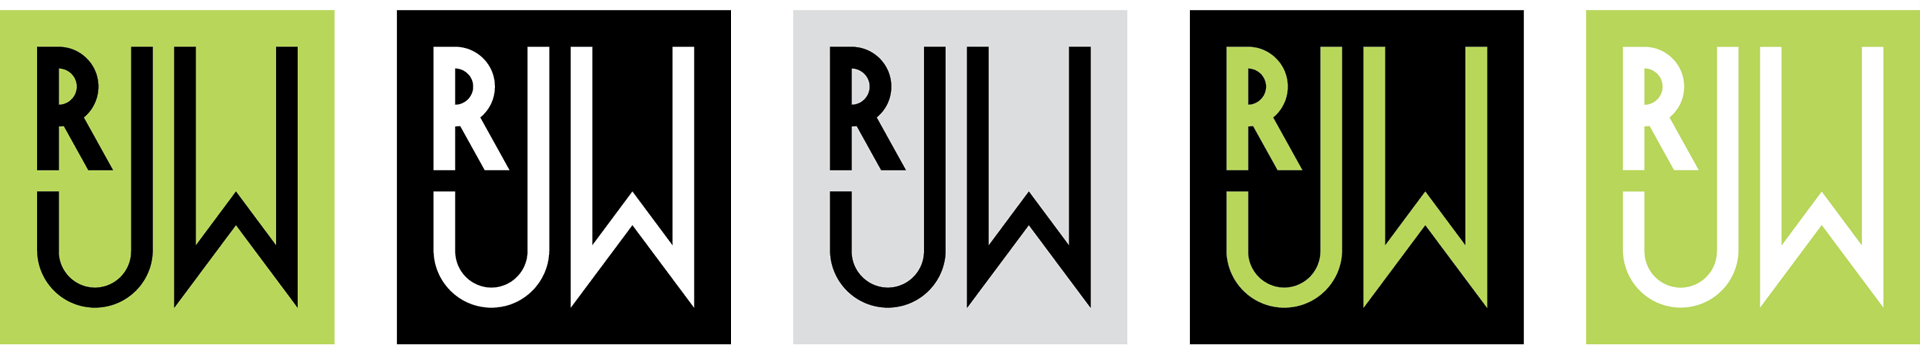 R. Joshua Whitton logos